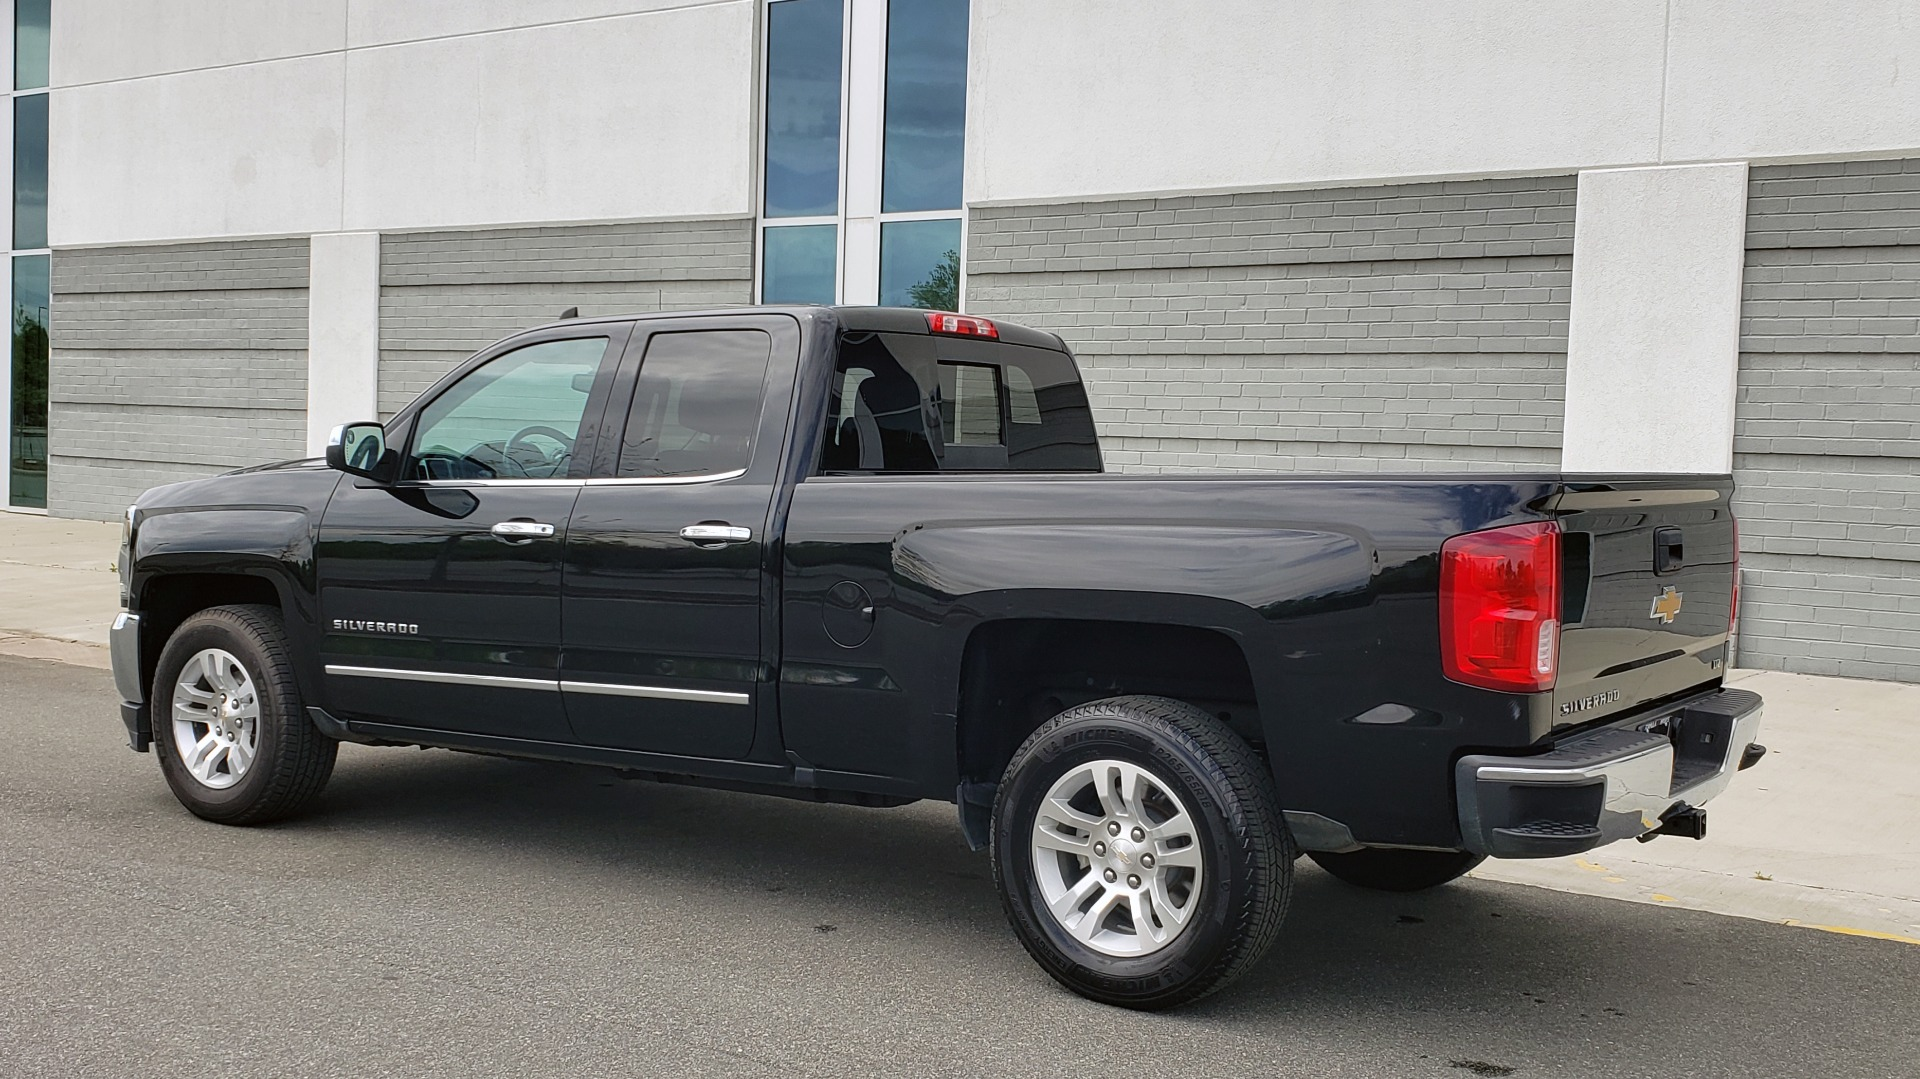 Used 2018 Chevrolet SILVERADO 1500 LTZ 1LZ / 5.3L V8 / 2WD / 6-SPD AUTO / DOUBLECAB / REARVIEW for sale Sold at Formula Imports in Charlotte NC 28227 5